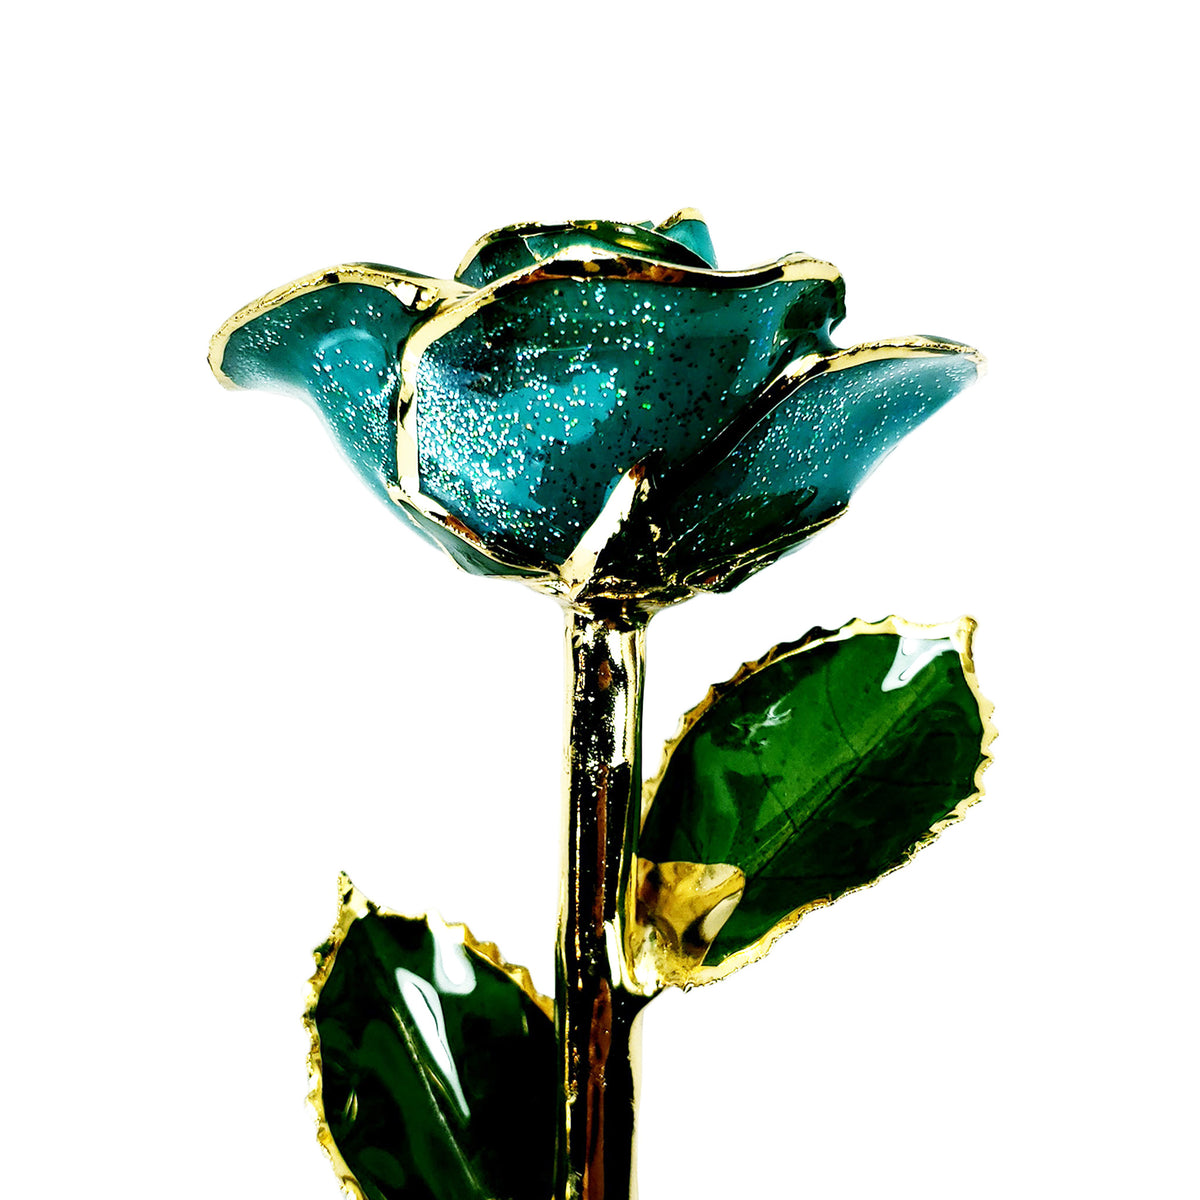 24K Gold Trimmed Forever Rose with Teal Petals with sparkles suspended in the finish. View of Stem, Leaves, and Rose Petals and Showing Detail of Gold Trim